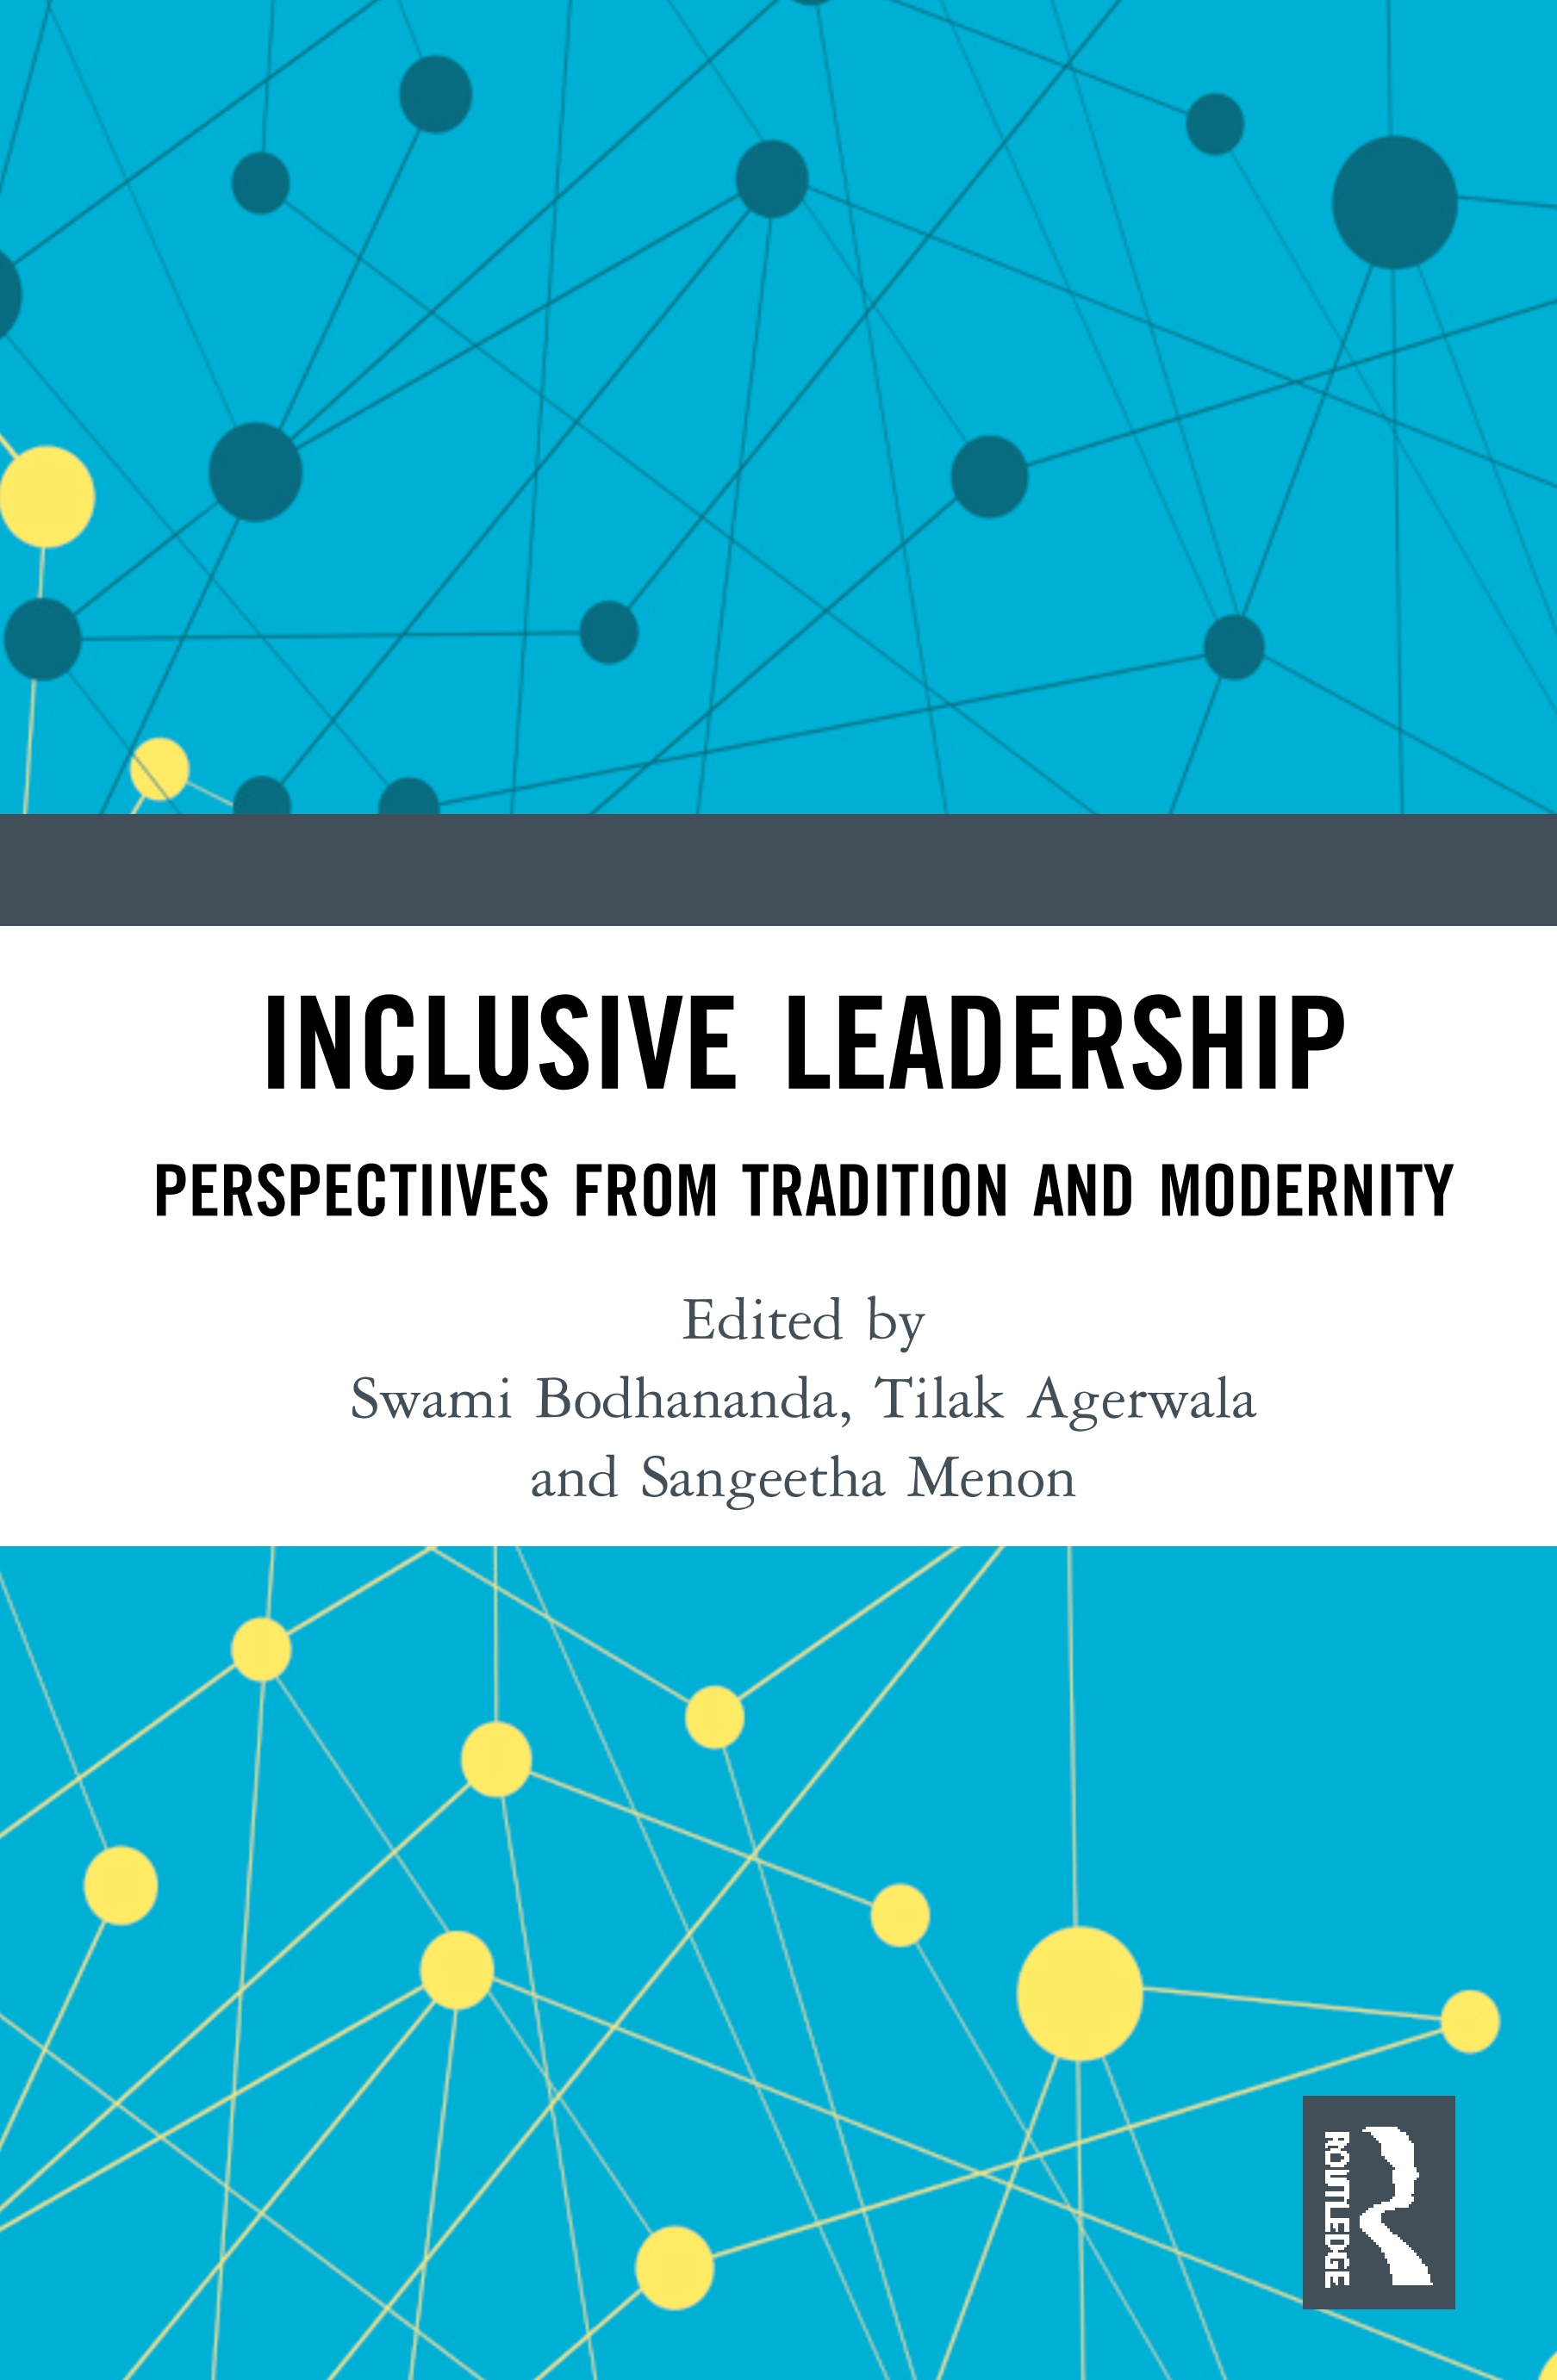 Inclusive Leadership: Perspectiives from Tradition and Modernity book cover